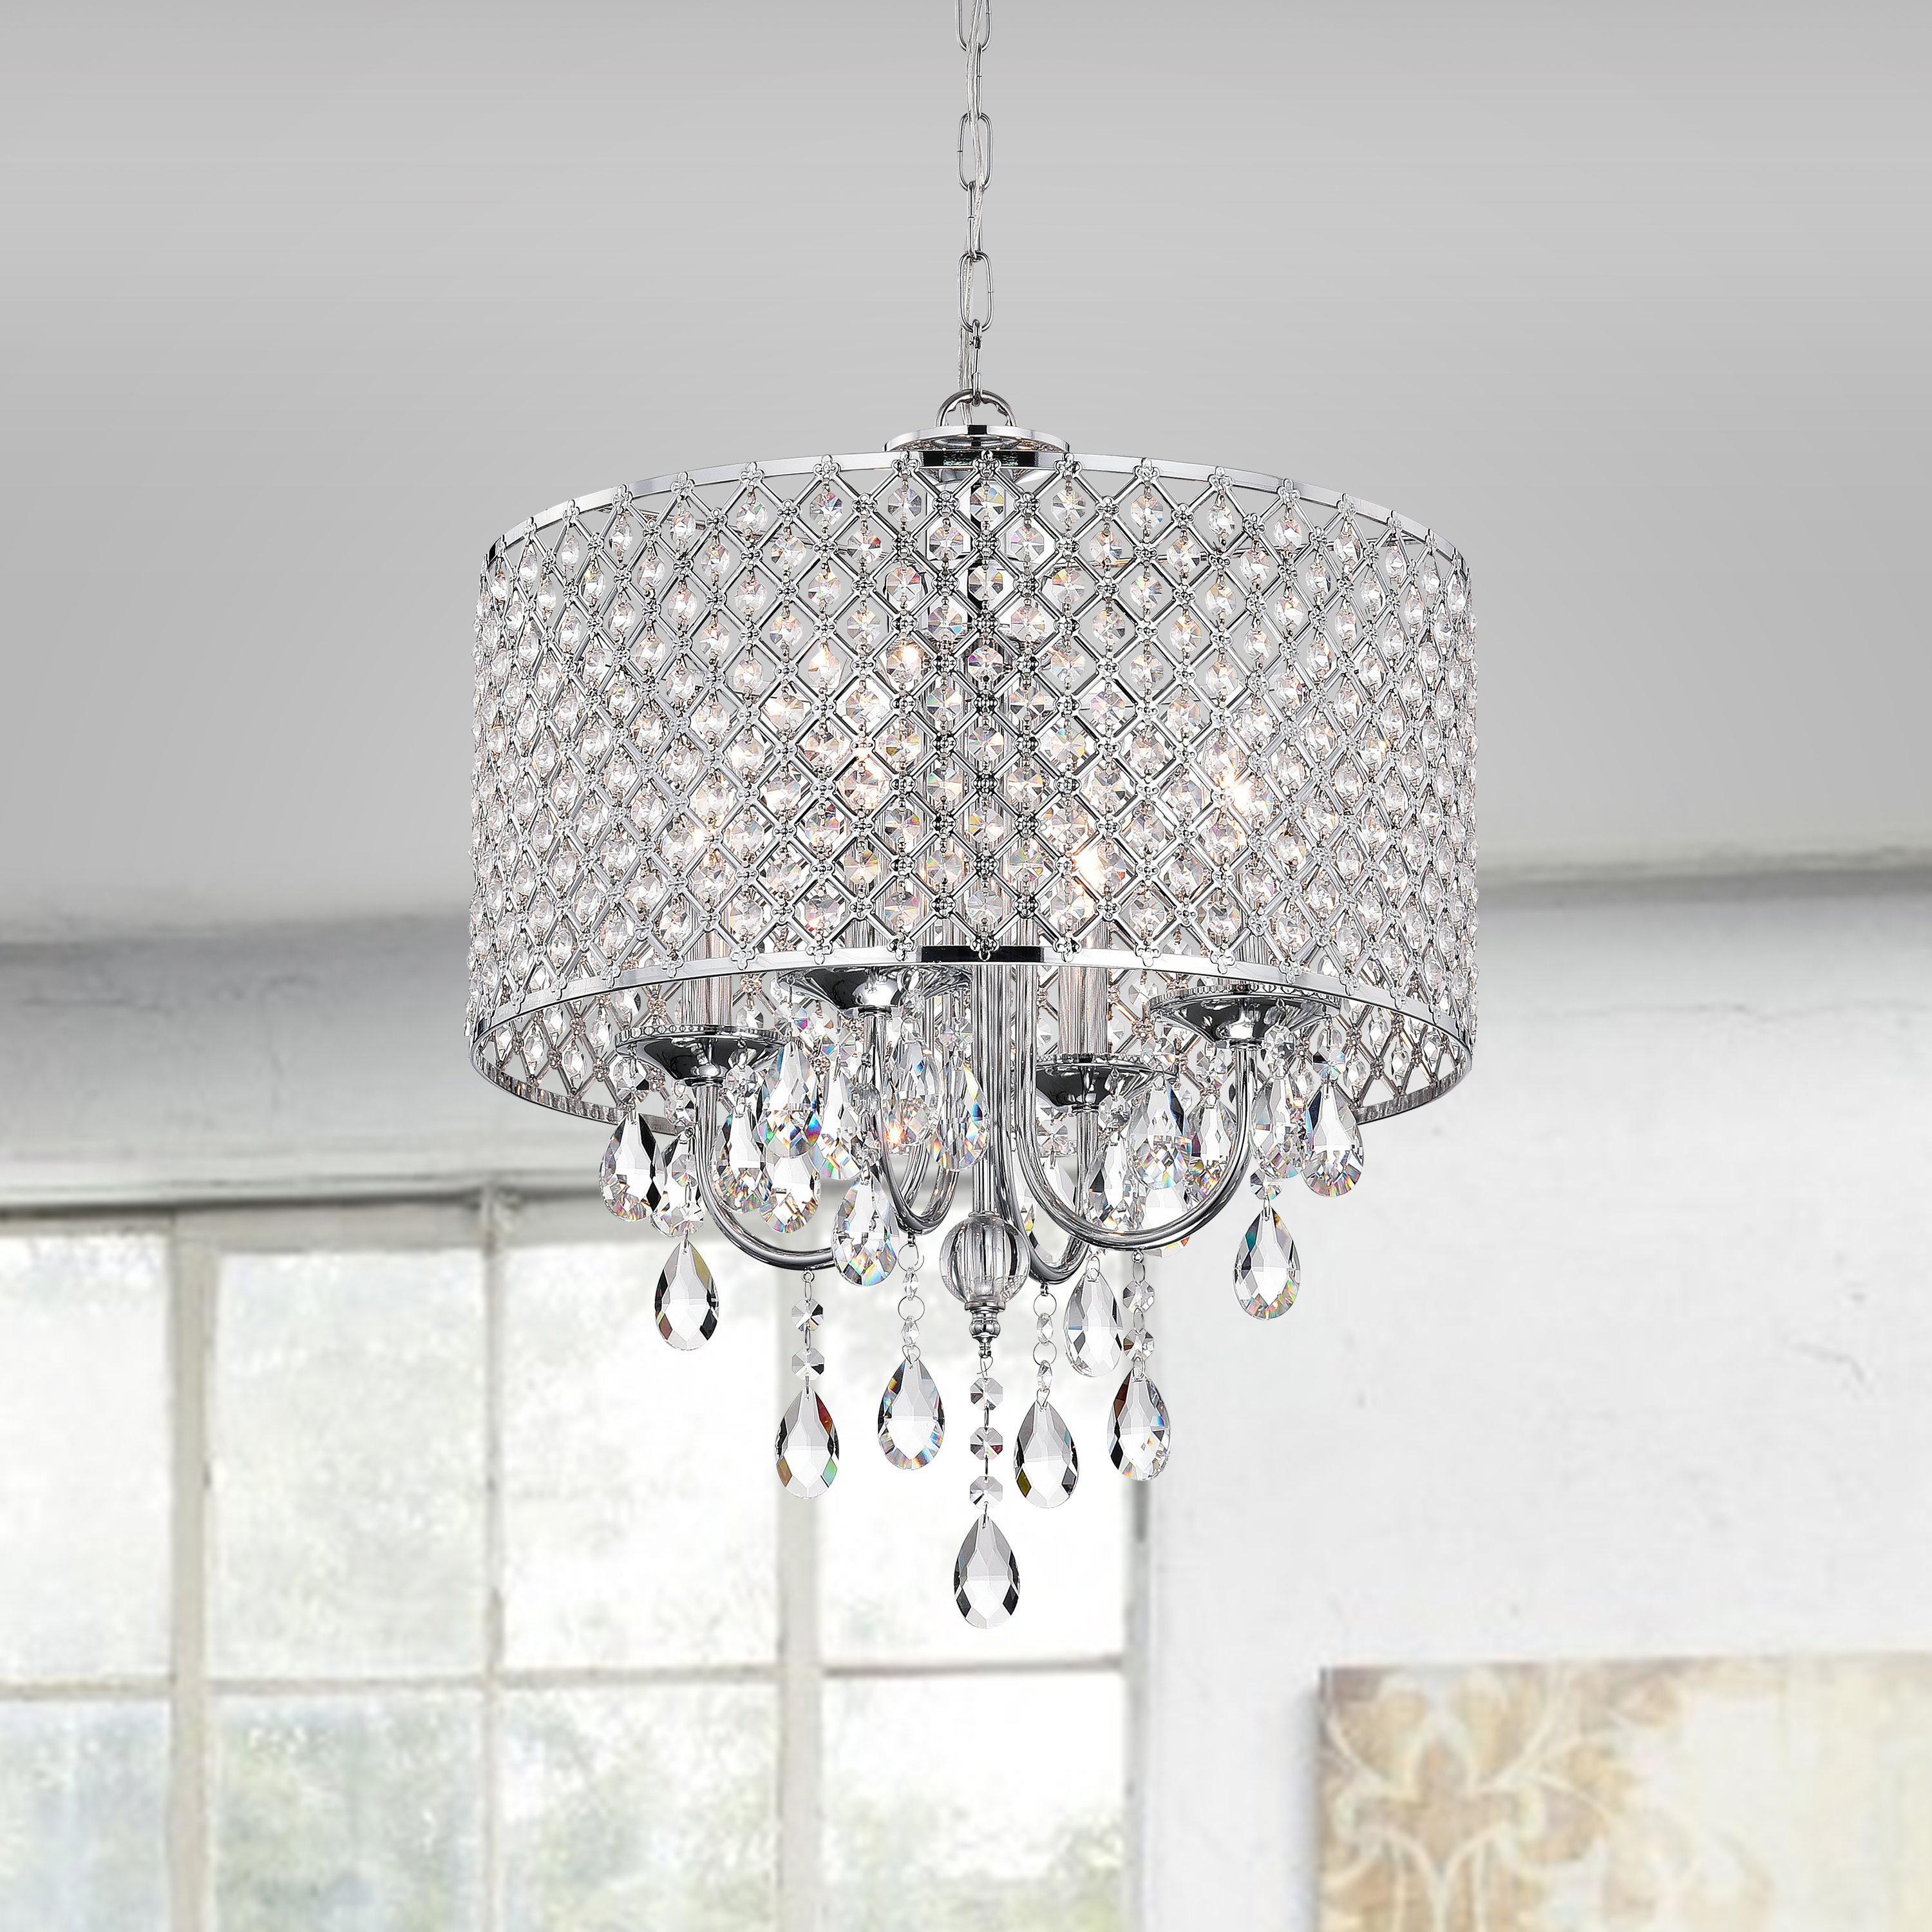 Aldgate 4 Light Crystal Chandelier Pertaining To Widely Used Albano 4 Light Crystal Chandeliers (View 18 of 25)